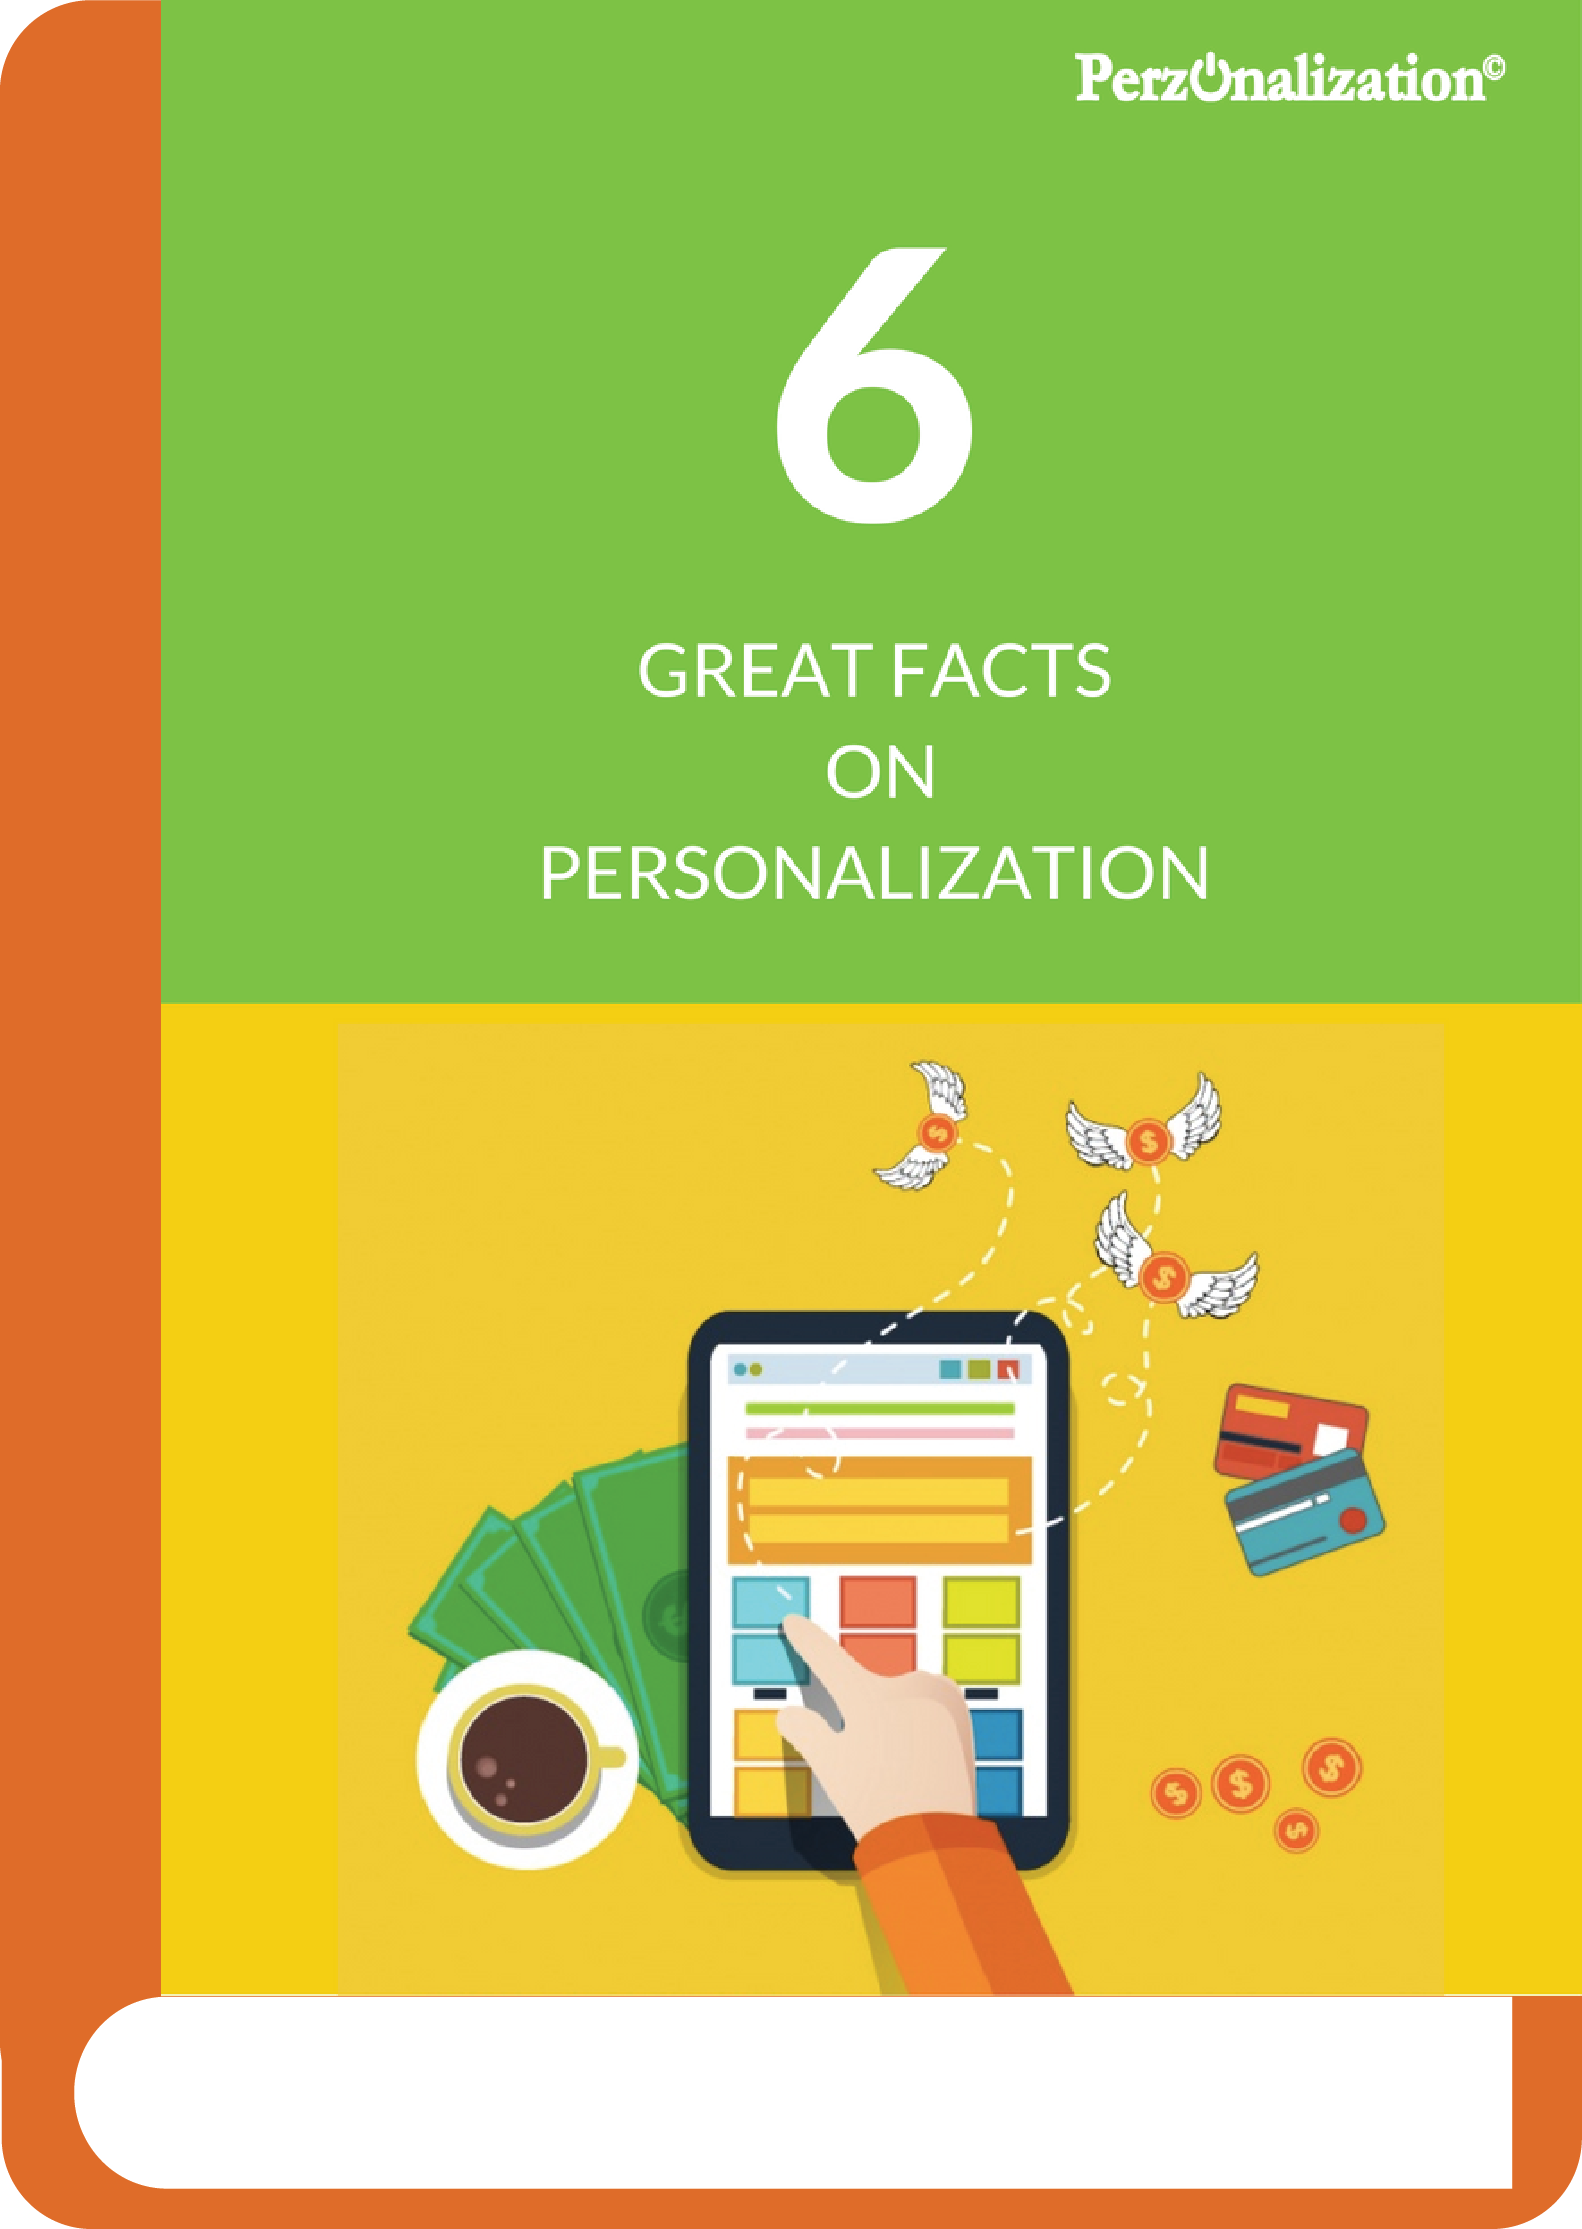 This eBooks includes several research results on personalization and points to some interesting facts ie. what effect personalization has on the open rate of emails.